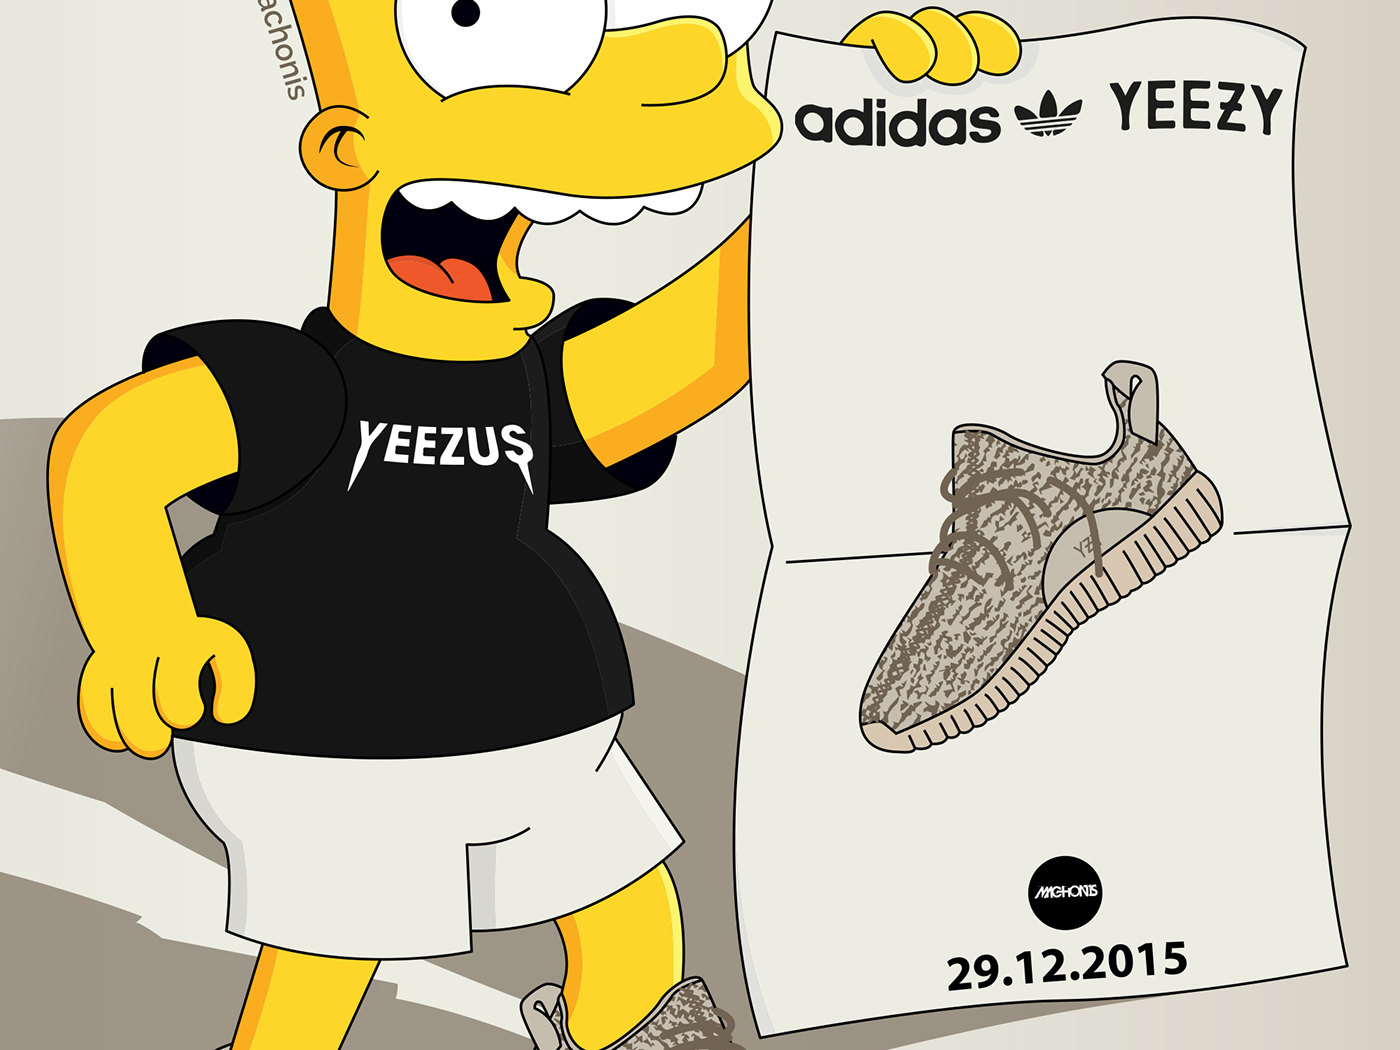 32591 in addition Bart Yeezy Supreme Wallpaper H9g8T4OOJkFEuudNvX8yIOH023amDcu2Gkg tzir514 additionally 337981147016726357 also 1 furthermore Bart. on machonis tumblr